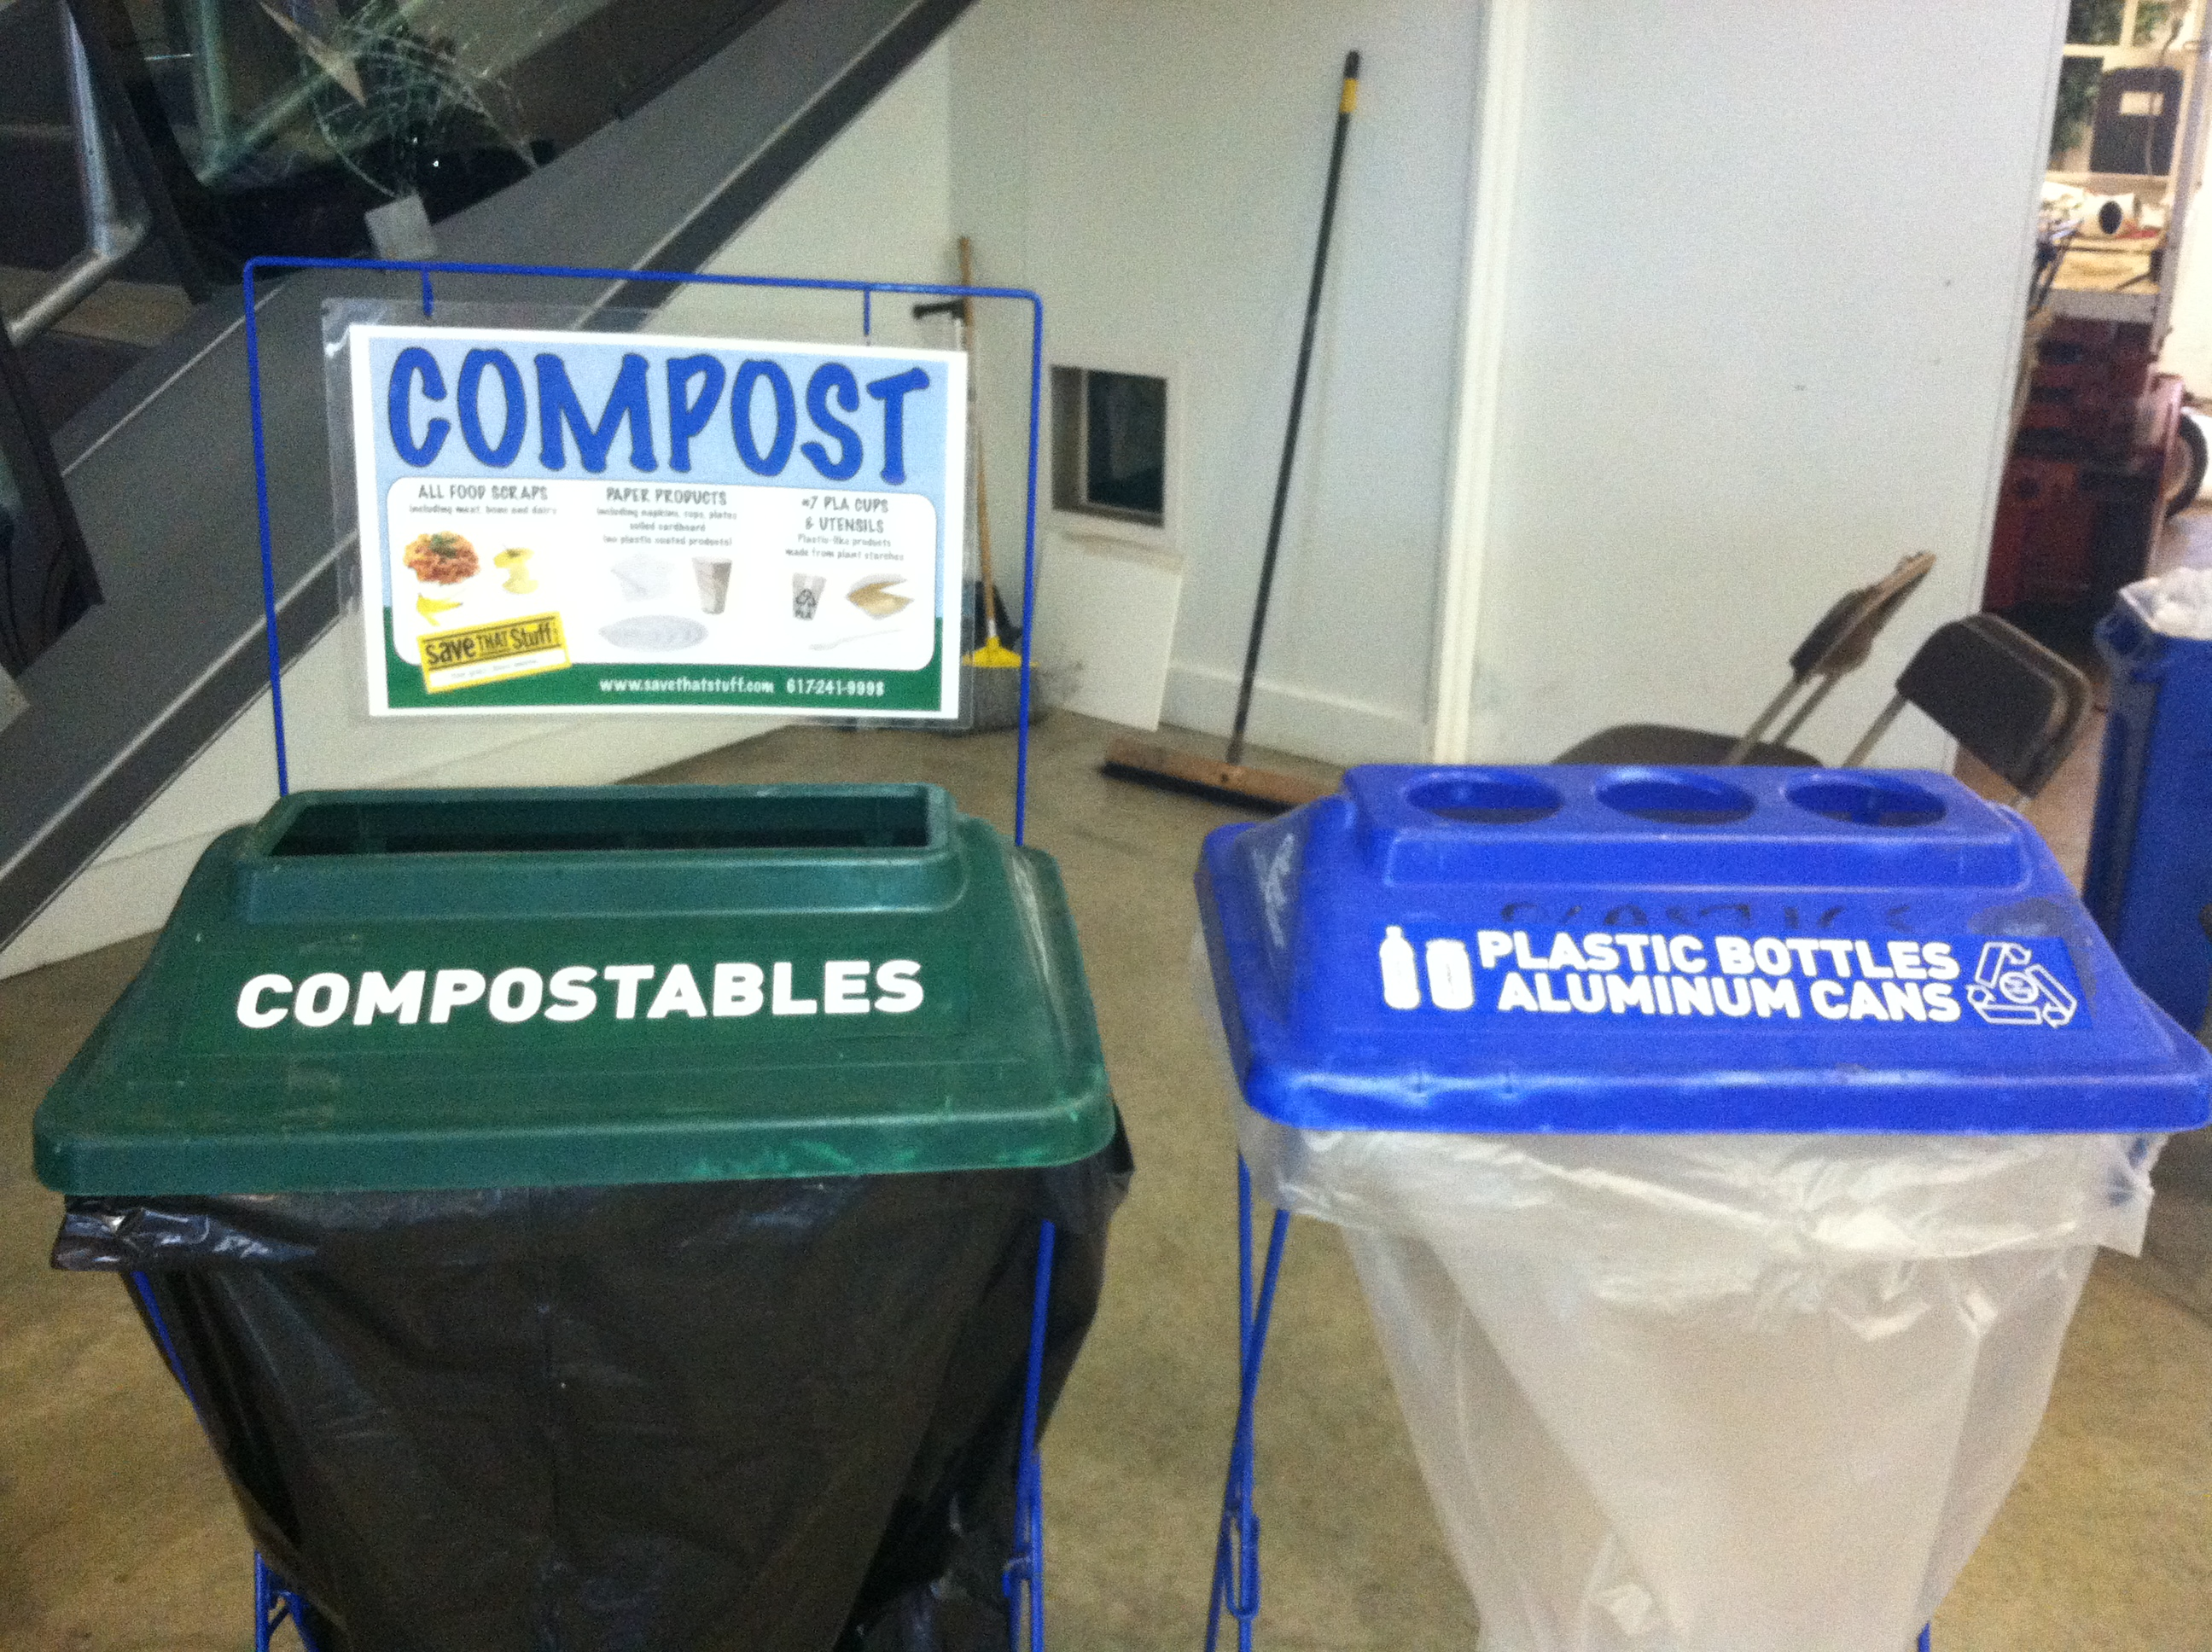 Compost2 How To Compost In Boston